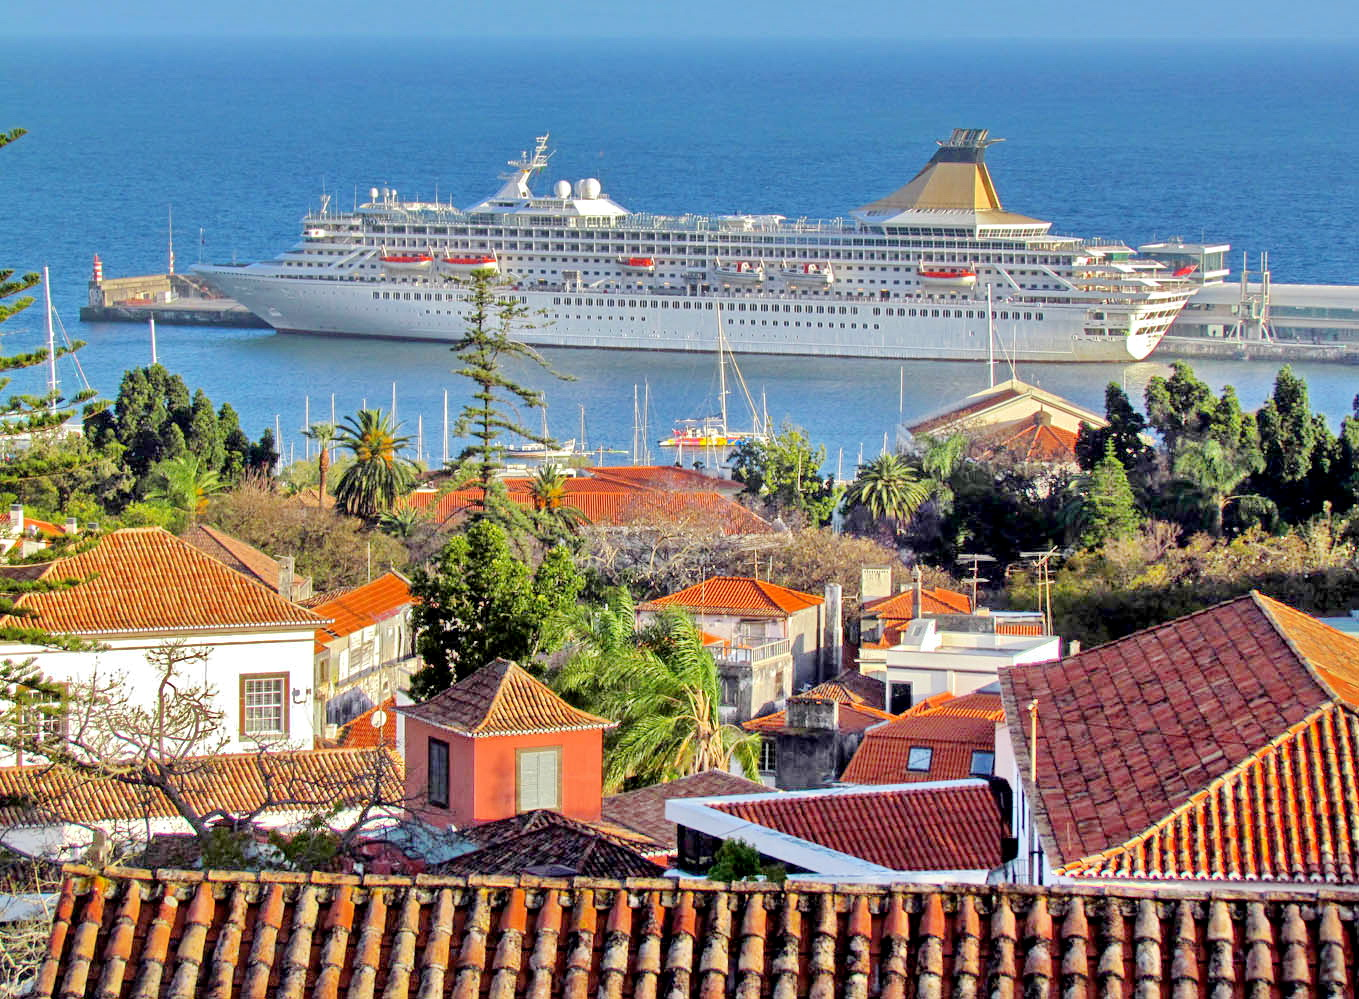 the roofs and the cruise ship